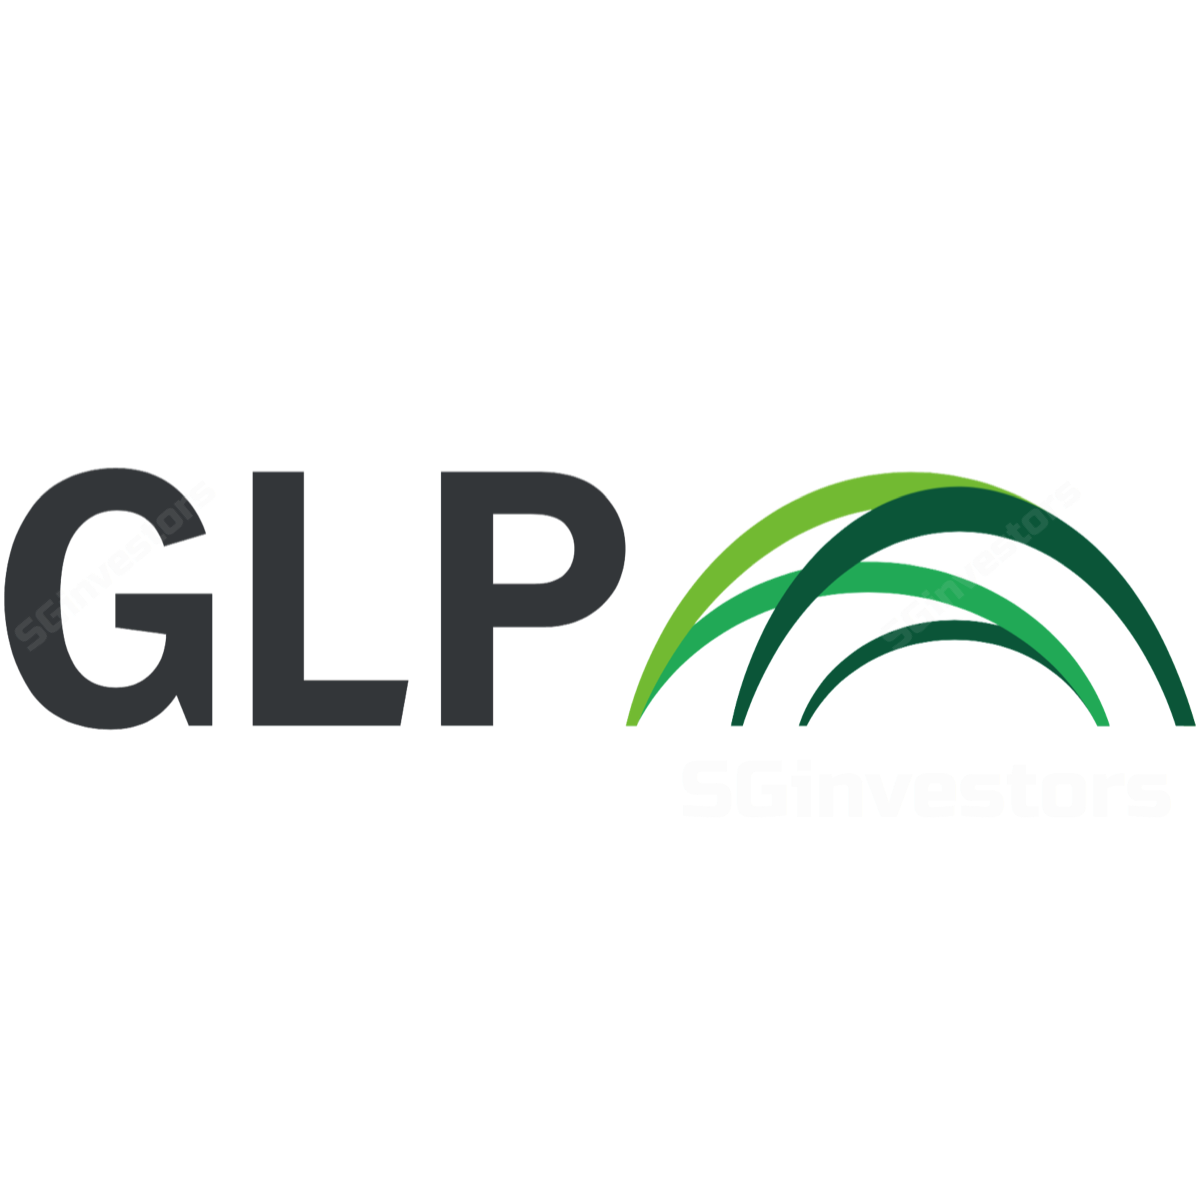 Global Logistic Properties Ltd - Phillip Securities 2017-07-17: Management Buy-out